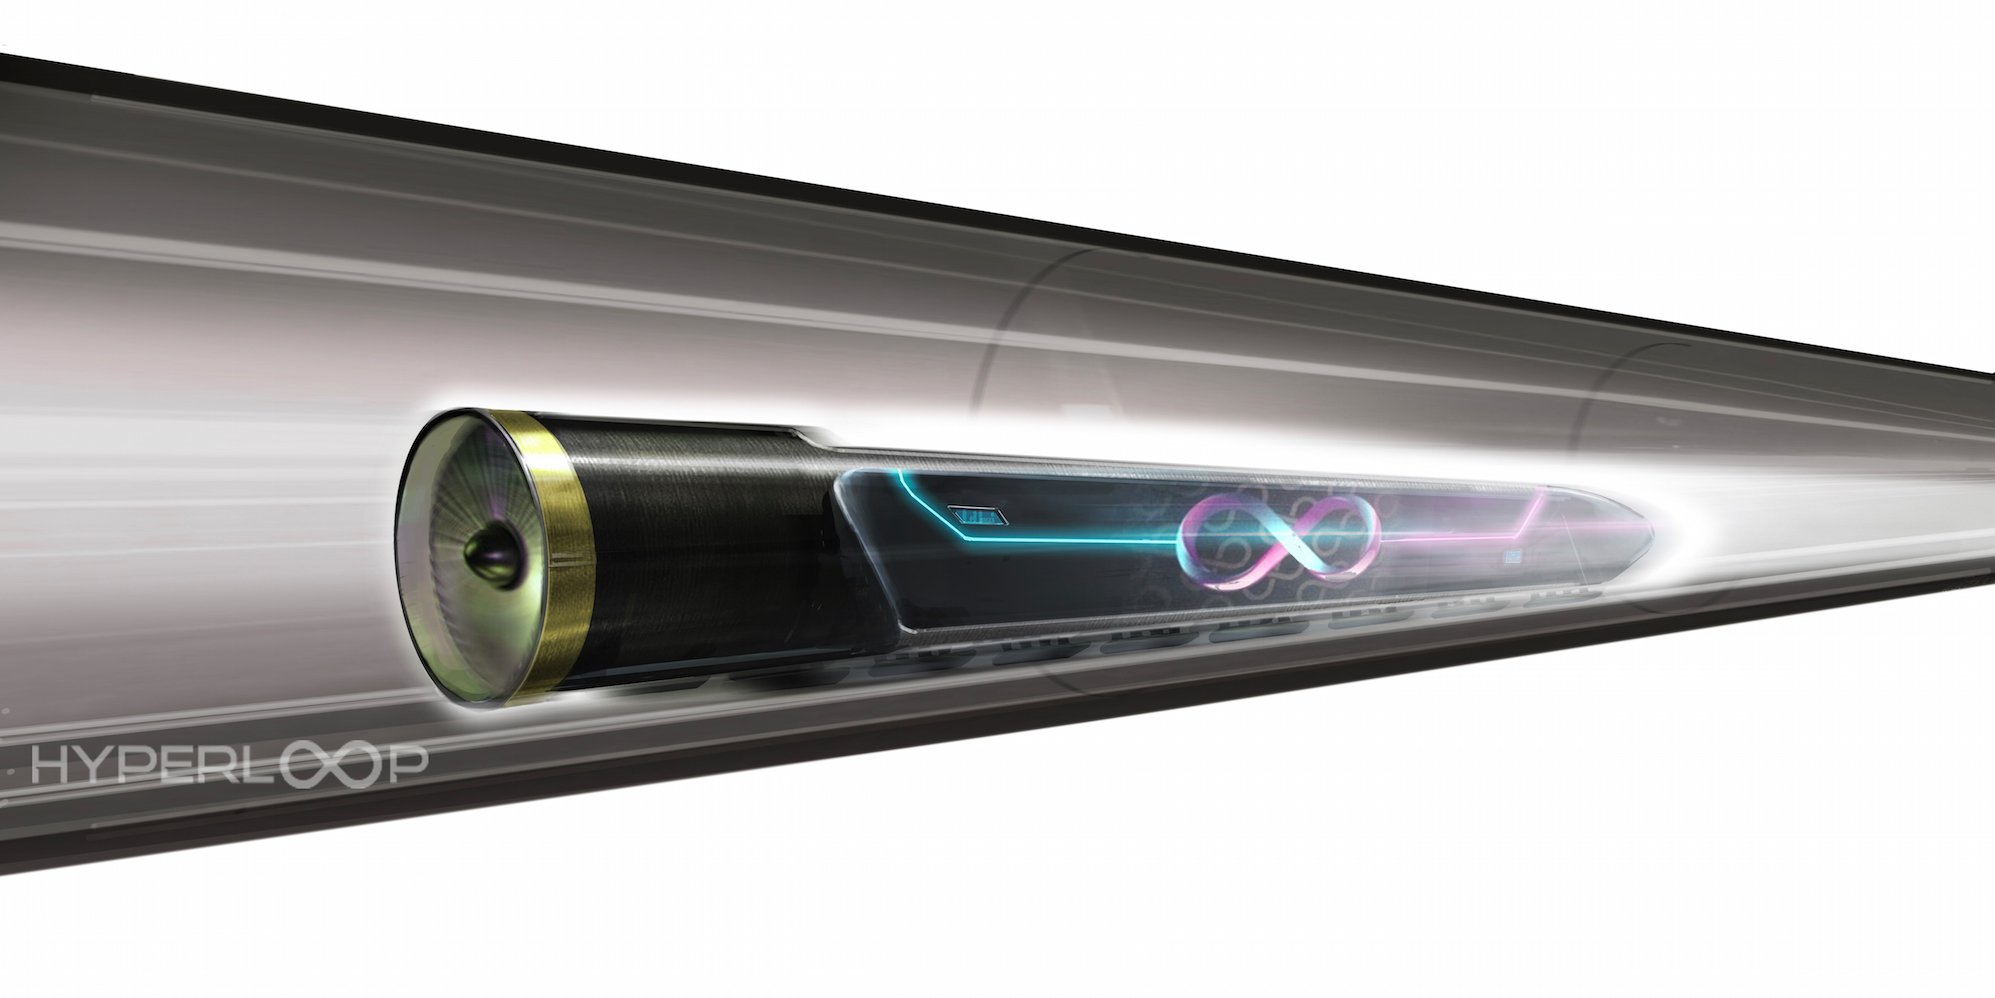 Hyperloop one Pod in motion